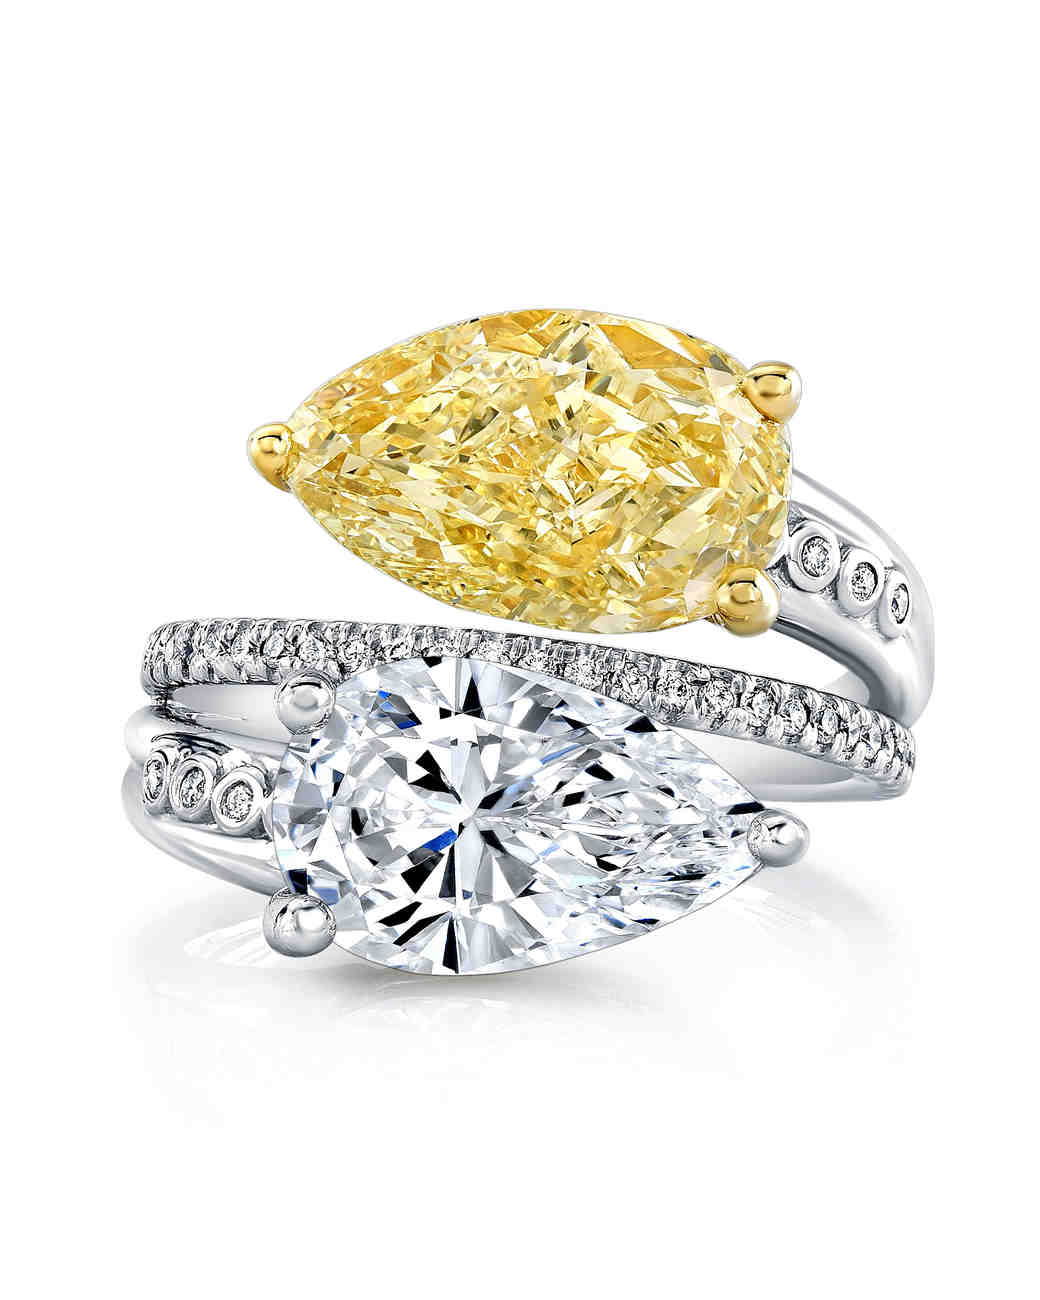 colored-engagement-rings-norman-silverman-diamonds-yellow-diamond-0316.jpg